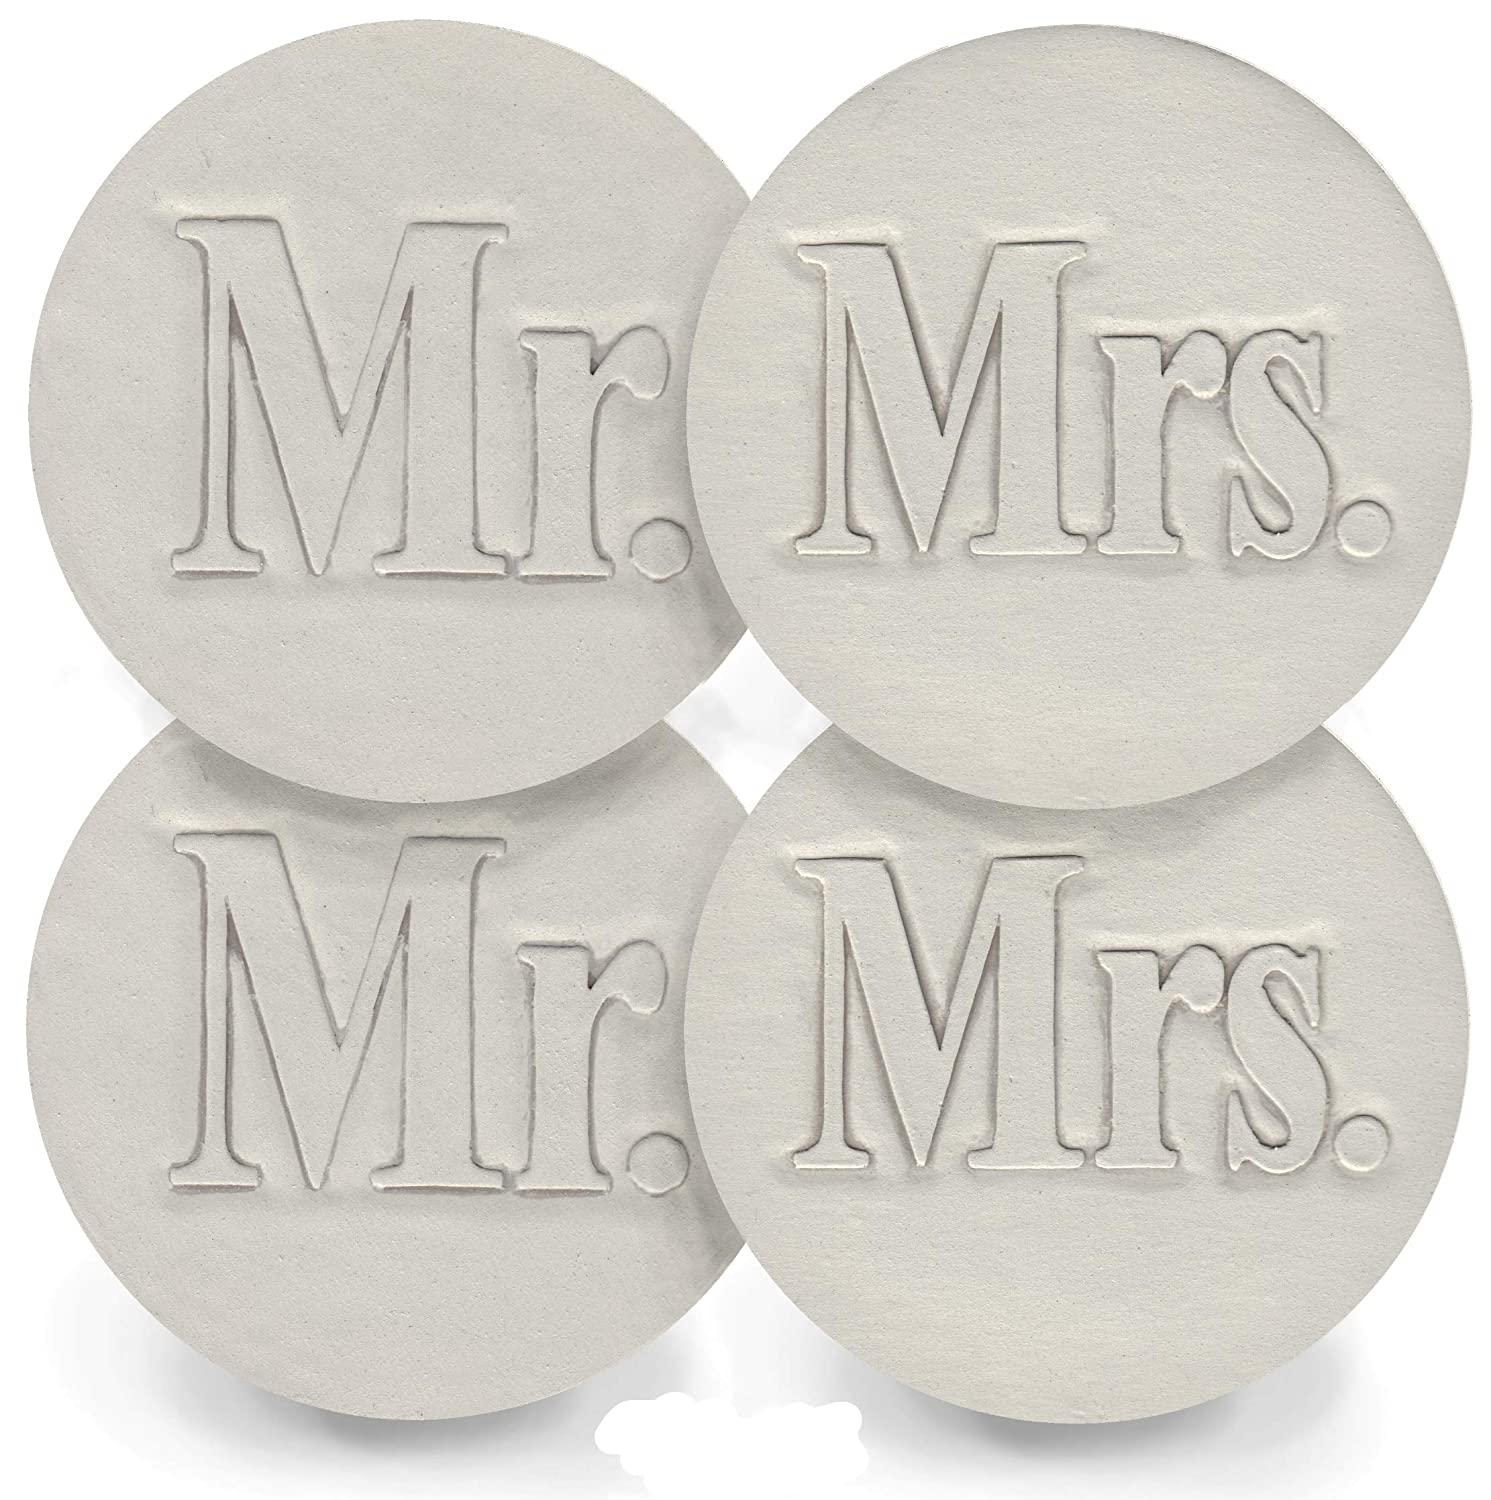 Drink Coasters Reservation - Mr. and Mrs. McCa set by Selling and selling Handmade Absorbent